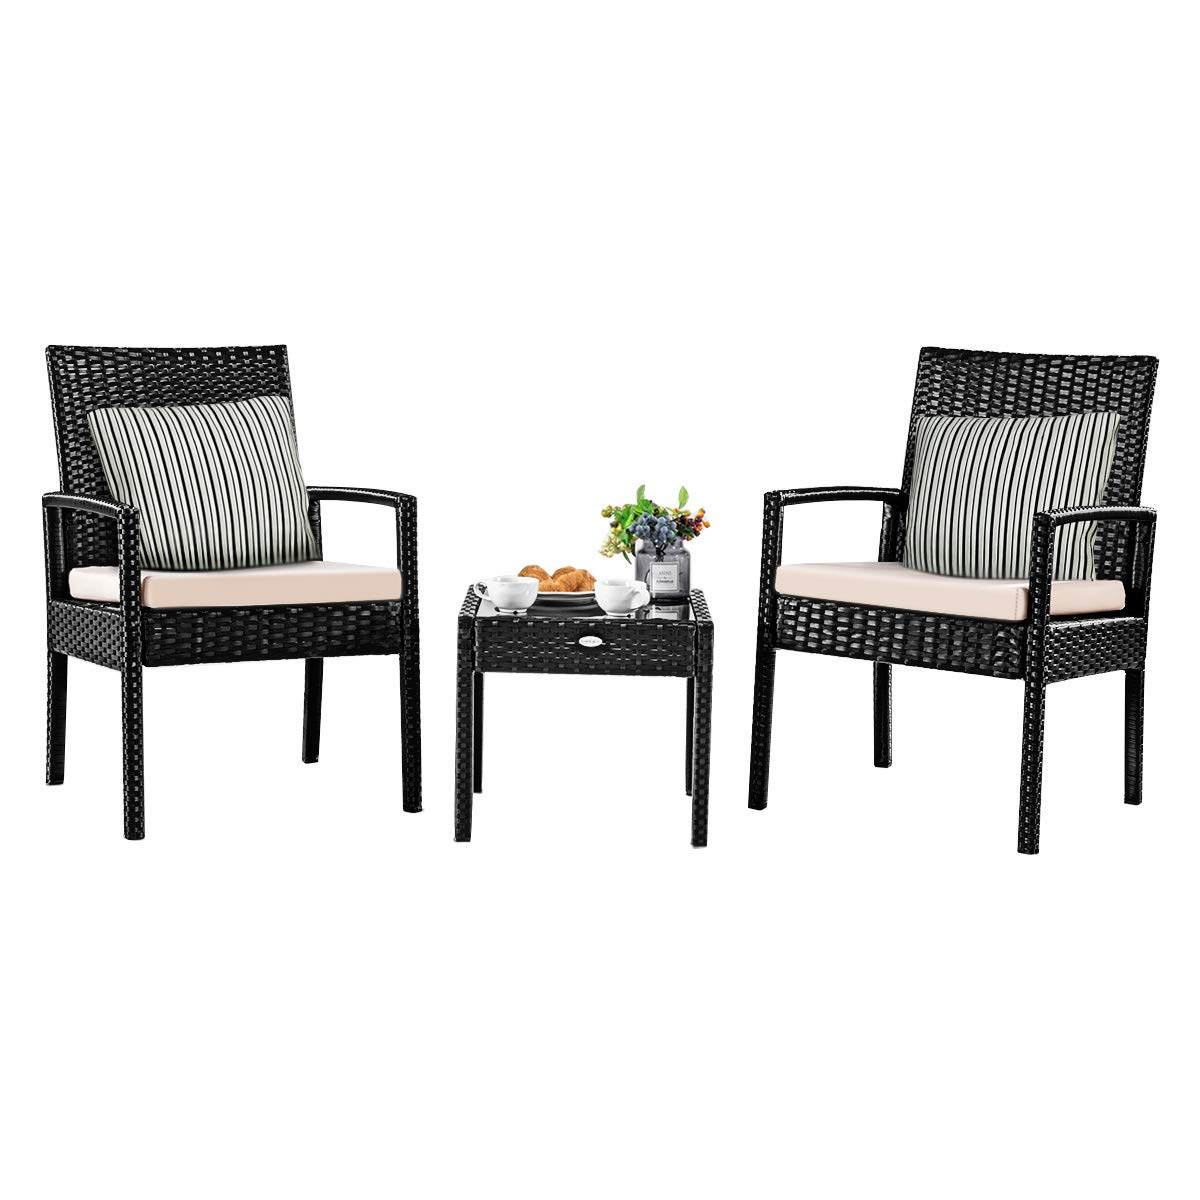 Tangkula 3 Piece Patio Furniture Set, Outdoor Wicker Rattan Conversation Set, 2 Cushioned Chairs & End Table, Backyard Garden Lawn Chat Set, Chill Time Modern Outdoor Furniture